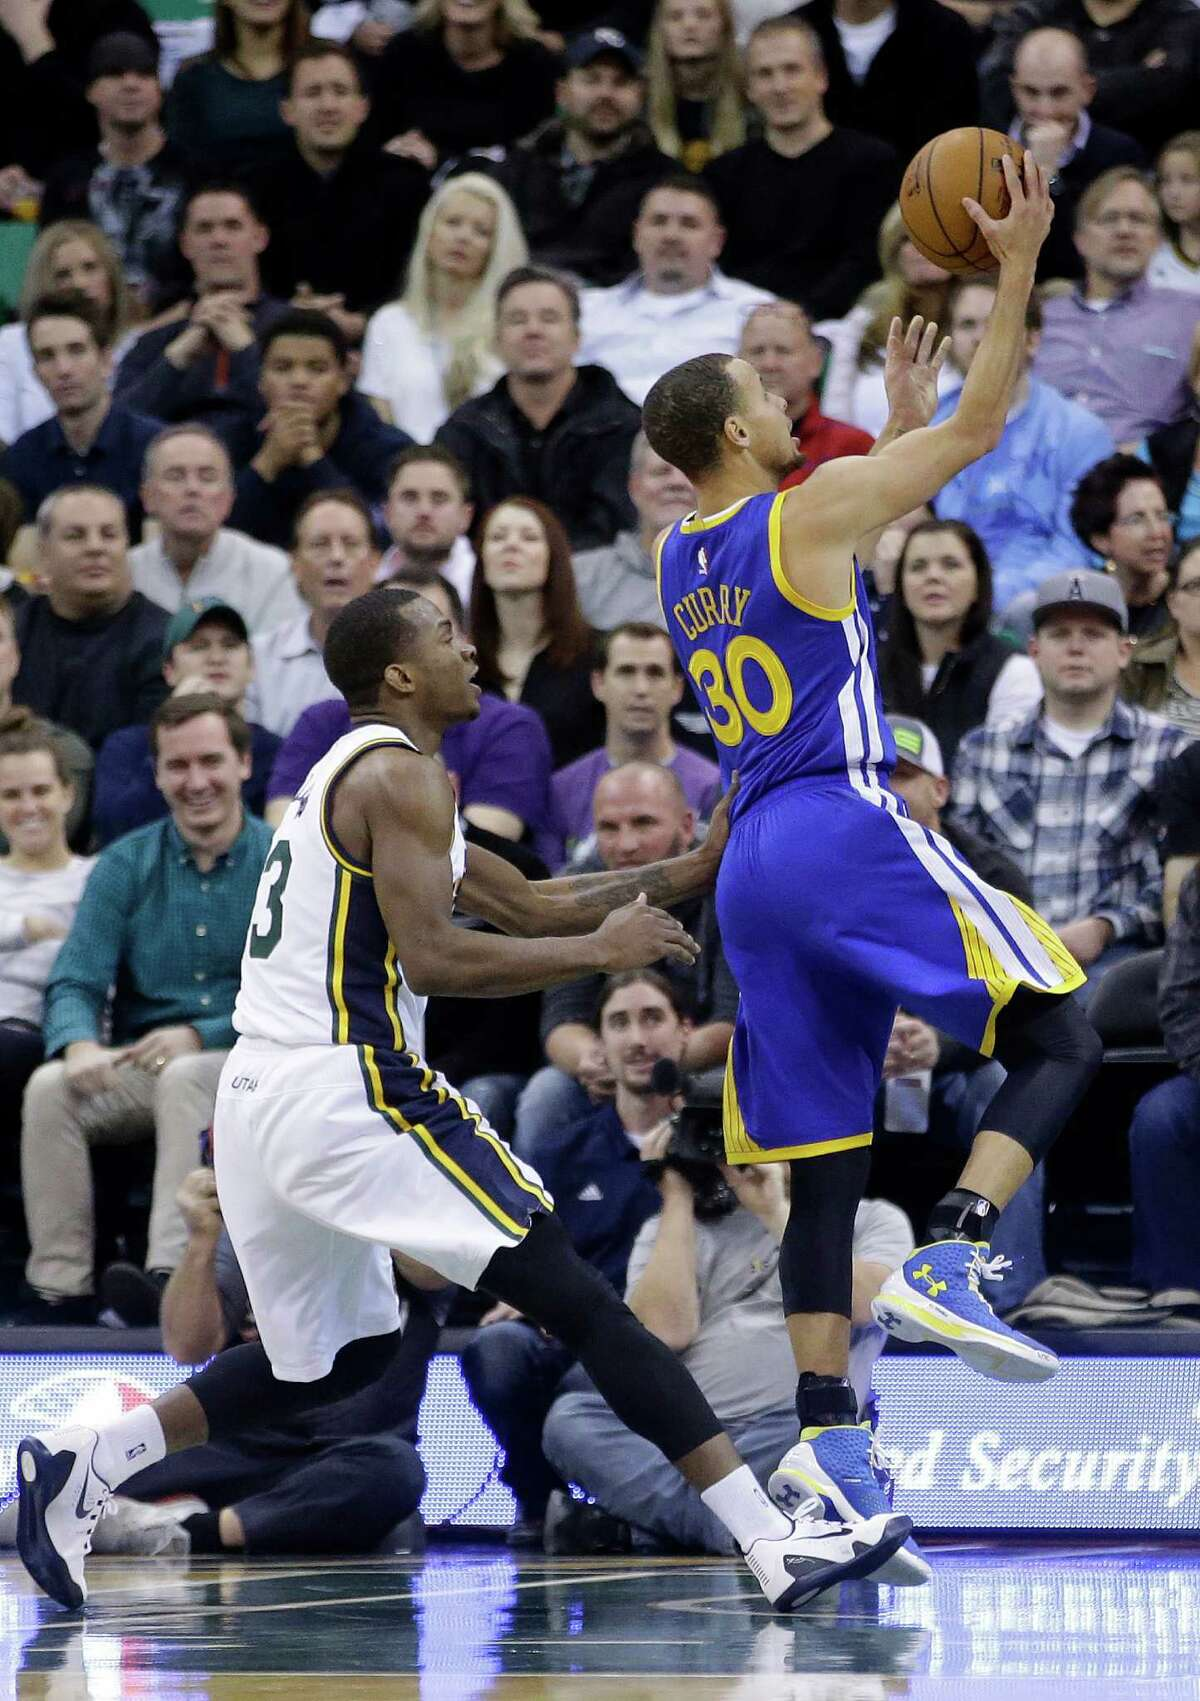 Golden State Warriors guard Stephen Curry (30) goes to the basket as Utah Jazz guard Elijah Millsap (13) defends in the second quarter during an NBA basketball game Tuesday, Jan. 13, 2015, in Salt Lake City. (AP Photo/Rick Bowmer)